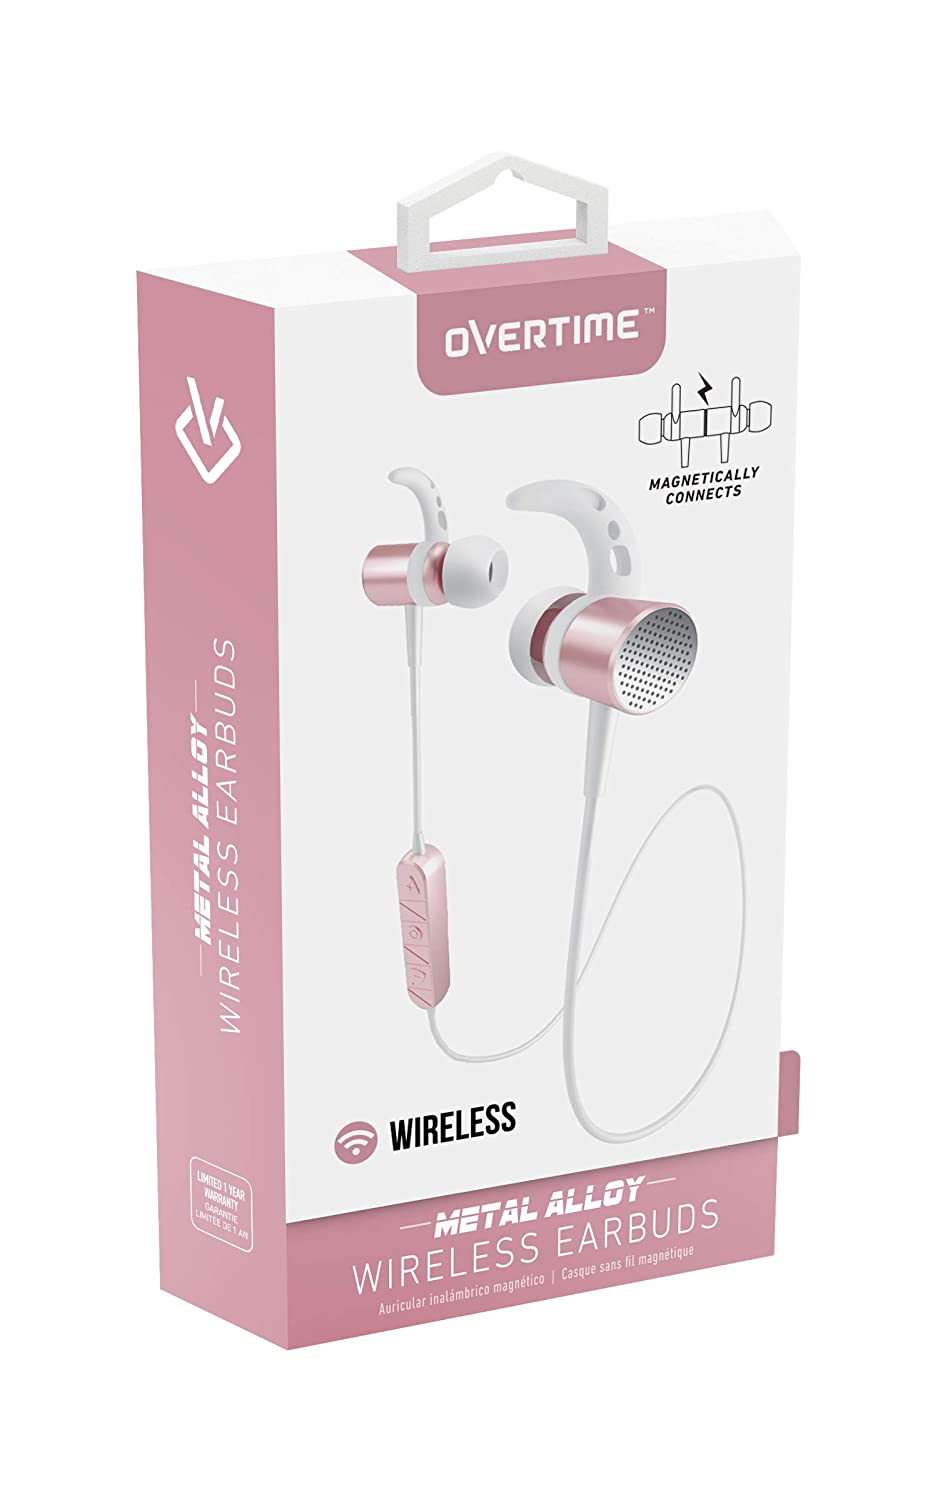 Amazon.com: Wireless Bluetooth Stereo Earbuds Noise Isolating Magnetic Headphones With Mic: Cell Phones & Accessories